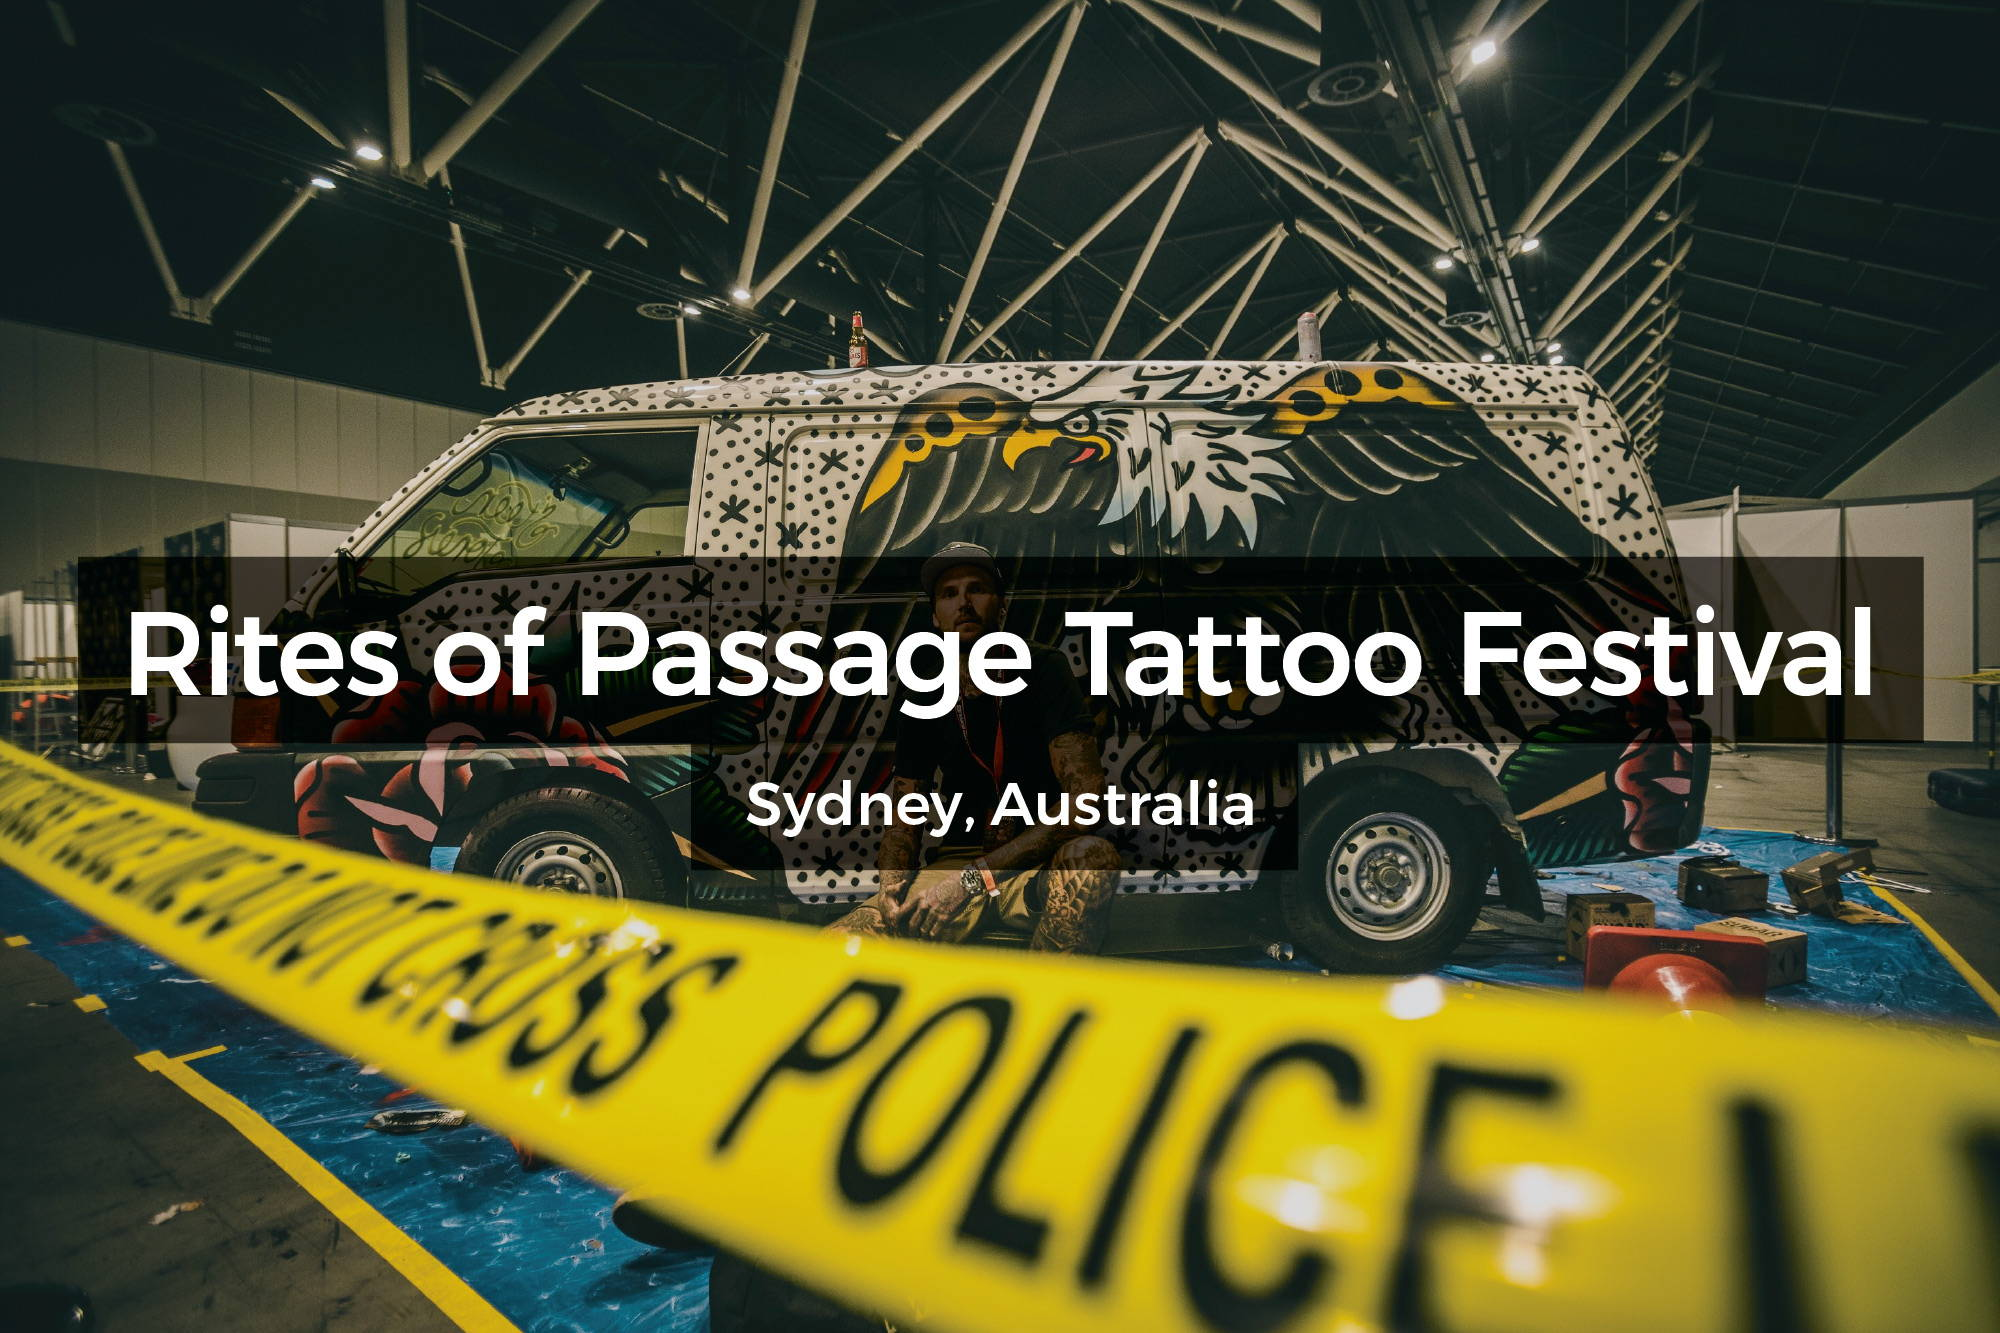 Live painting at Rites of Passage Tattoo Festival in Sydney, Australia